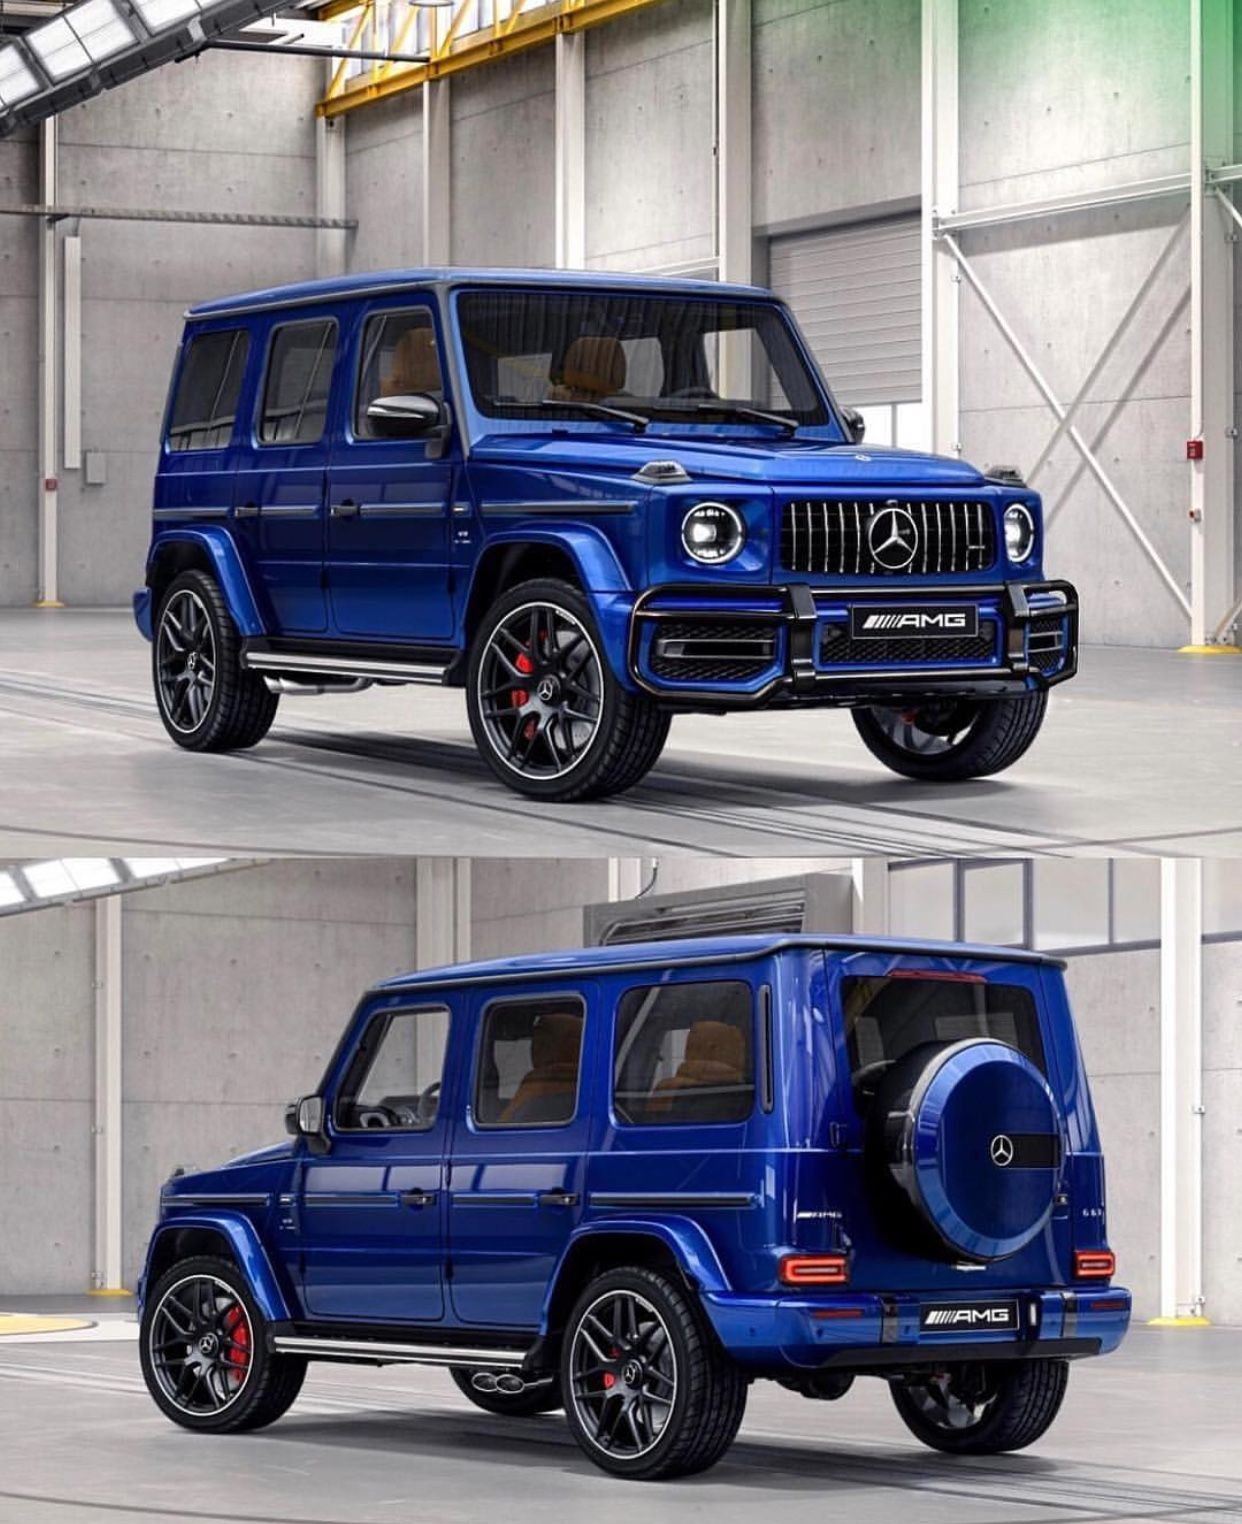 Pin By Dwight Robinson On Blue Montero In 2020 G Wagon Amg